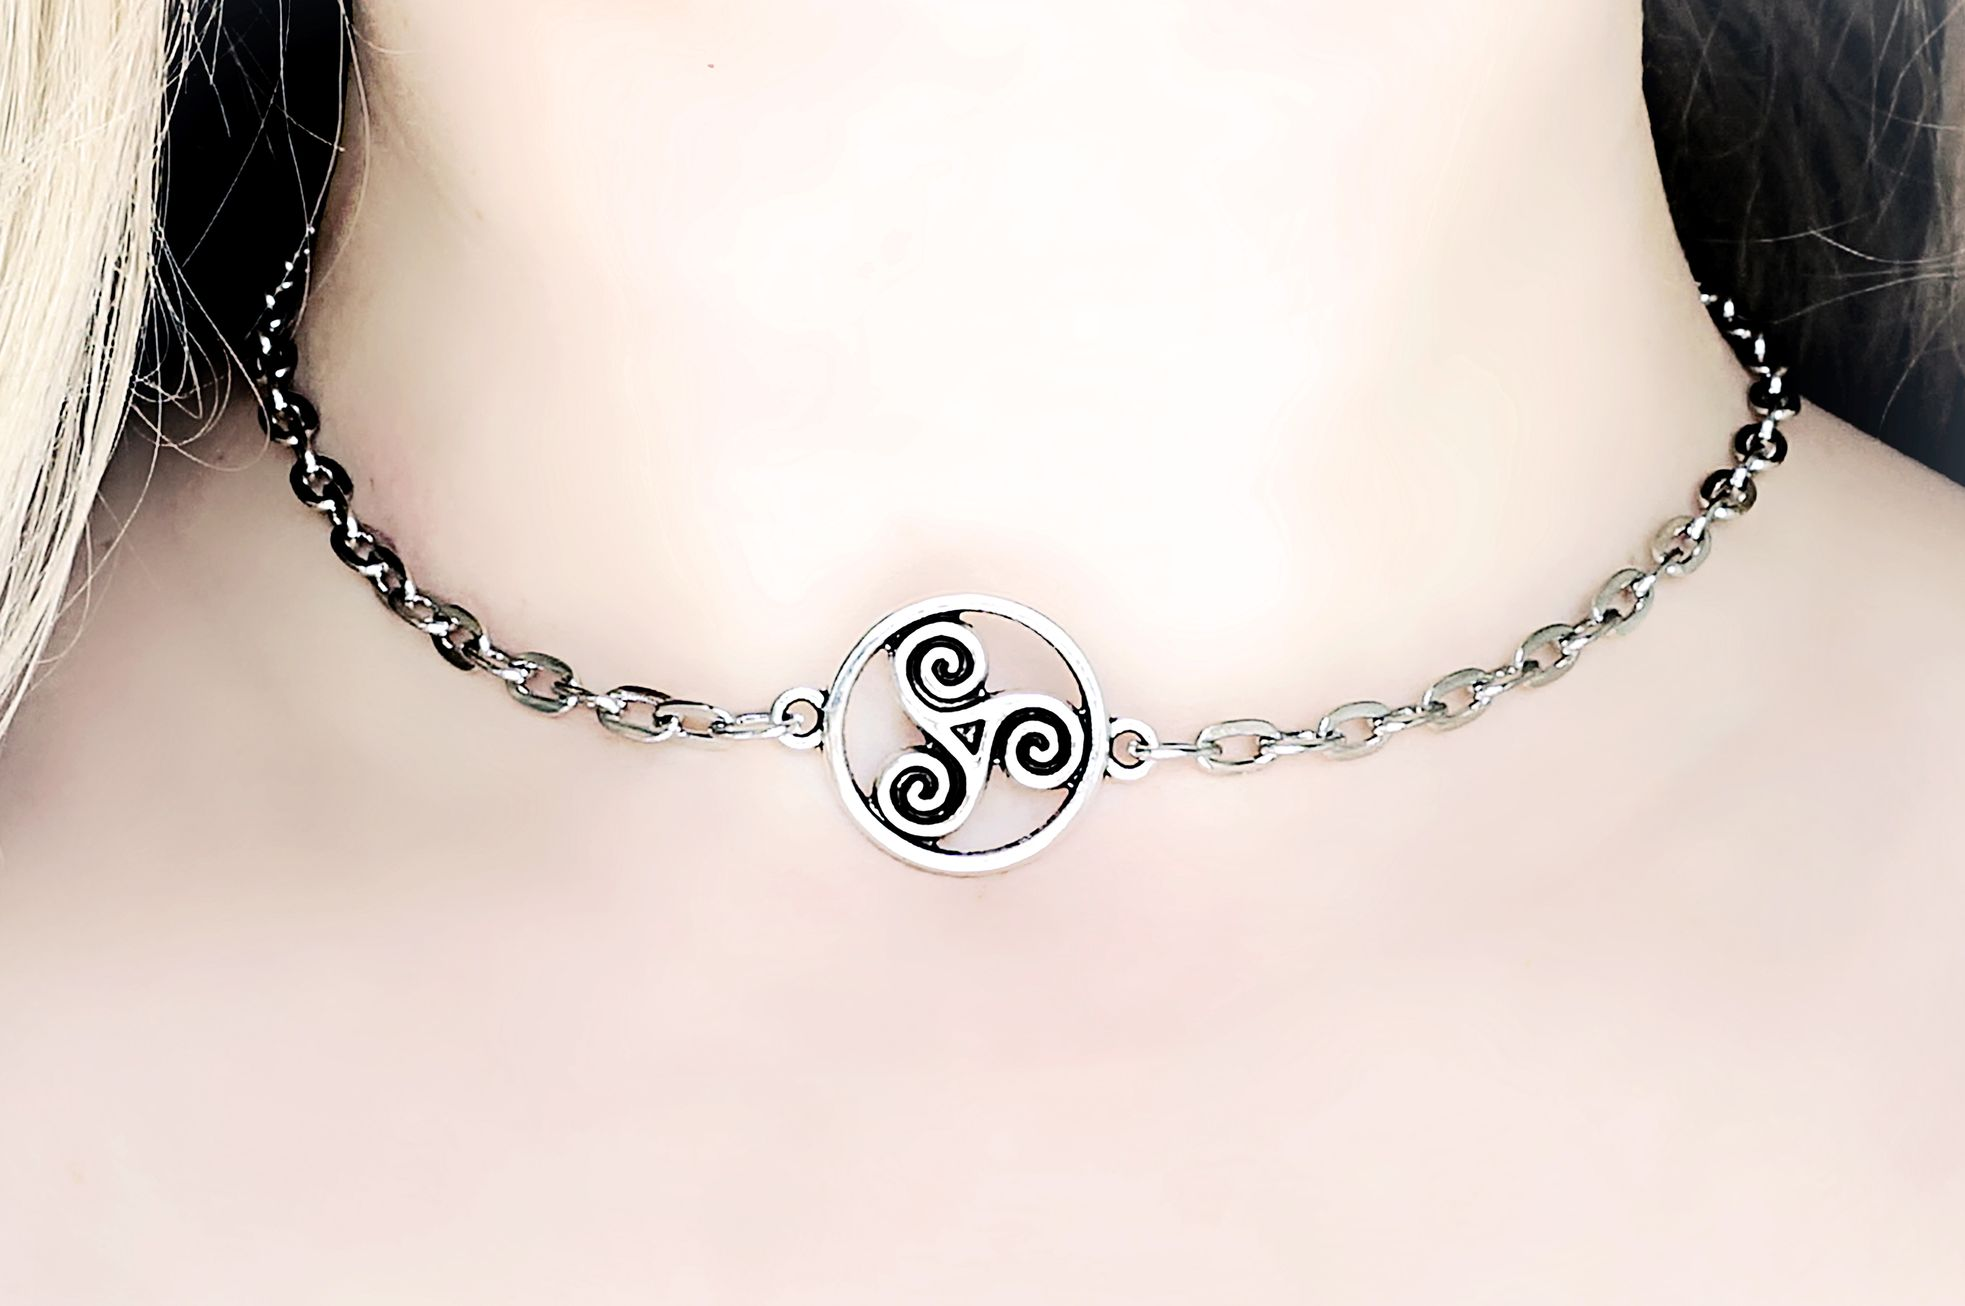 Submissive collar triskele bdsm emblem